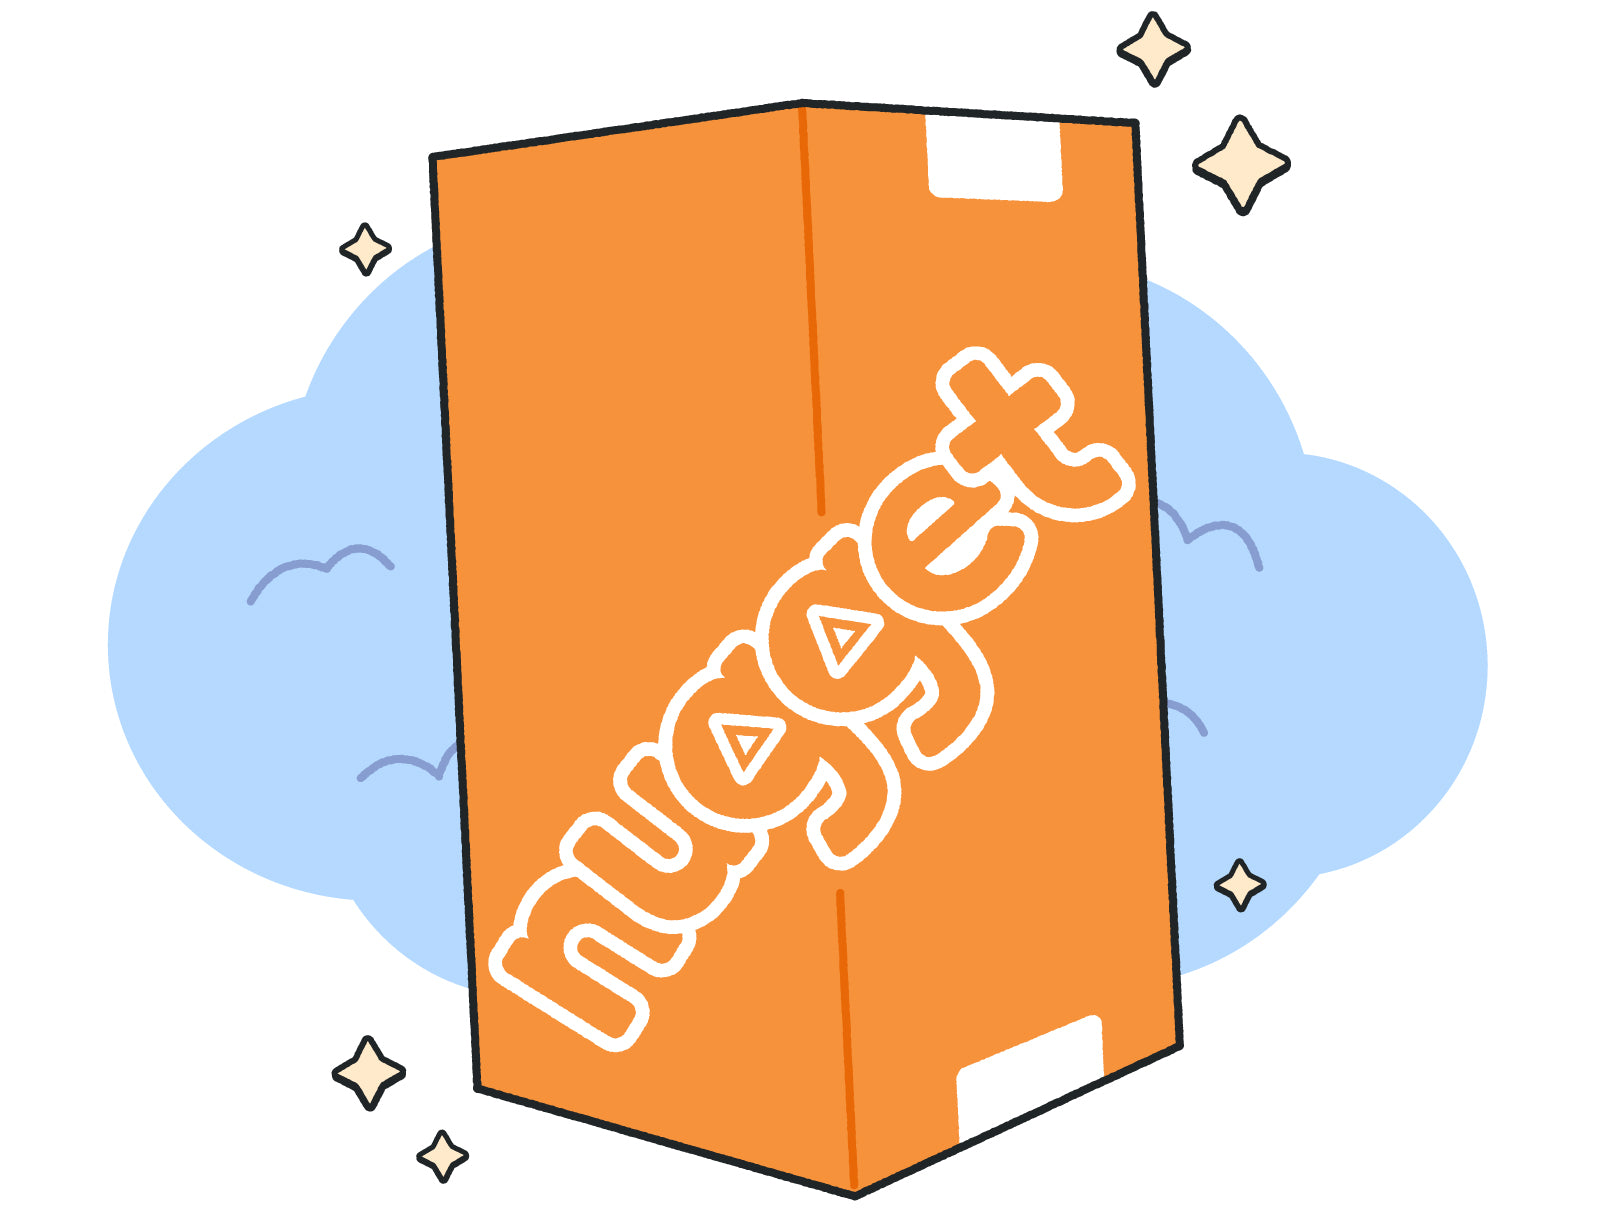 Cartoon of classic orange Nugget box floating on blue clouds surrounded by starburst shapes